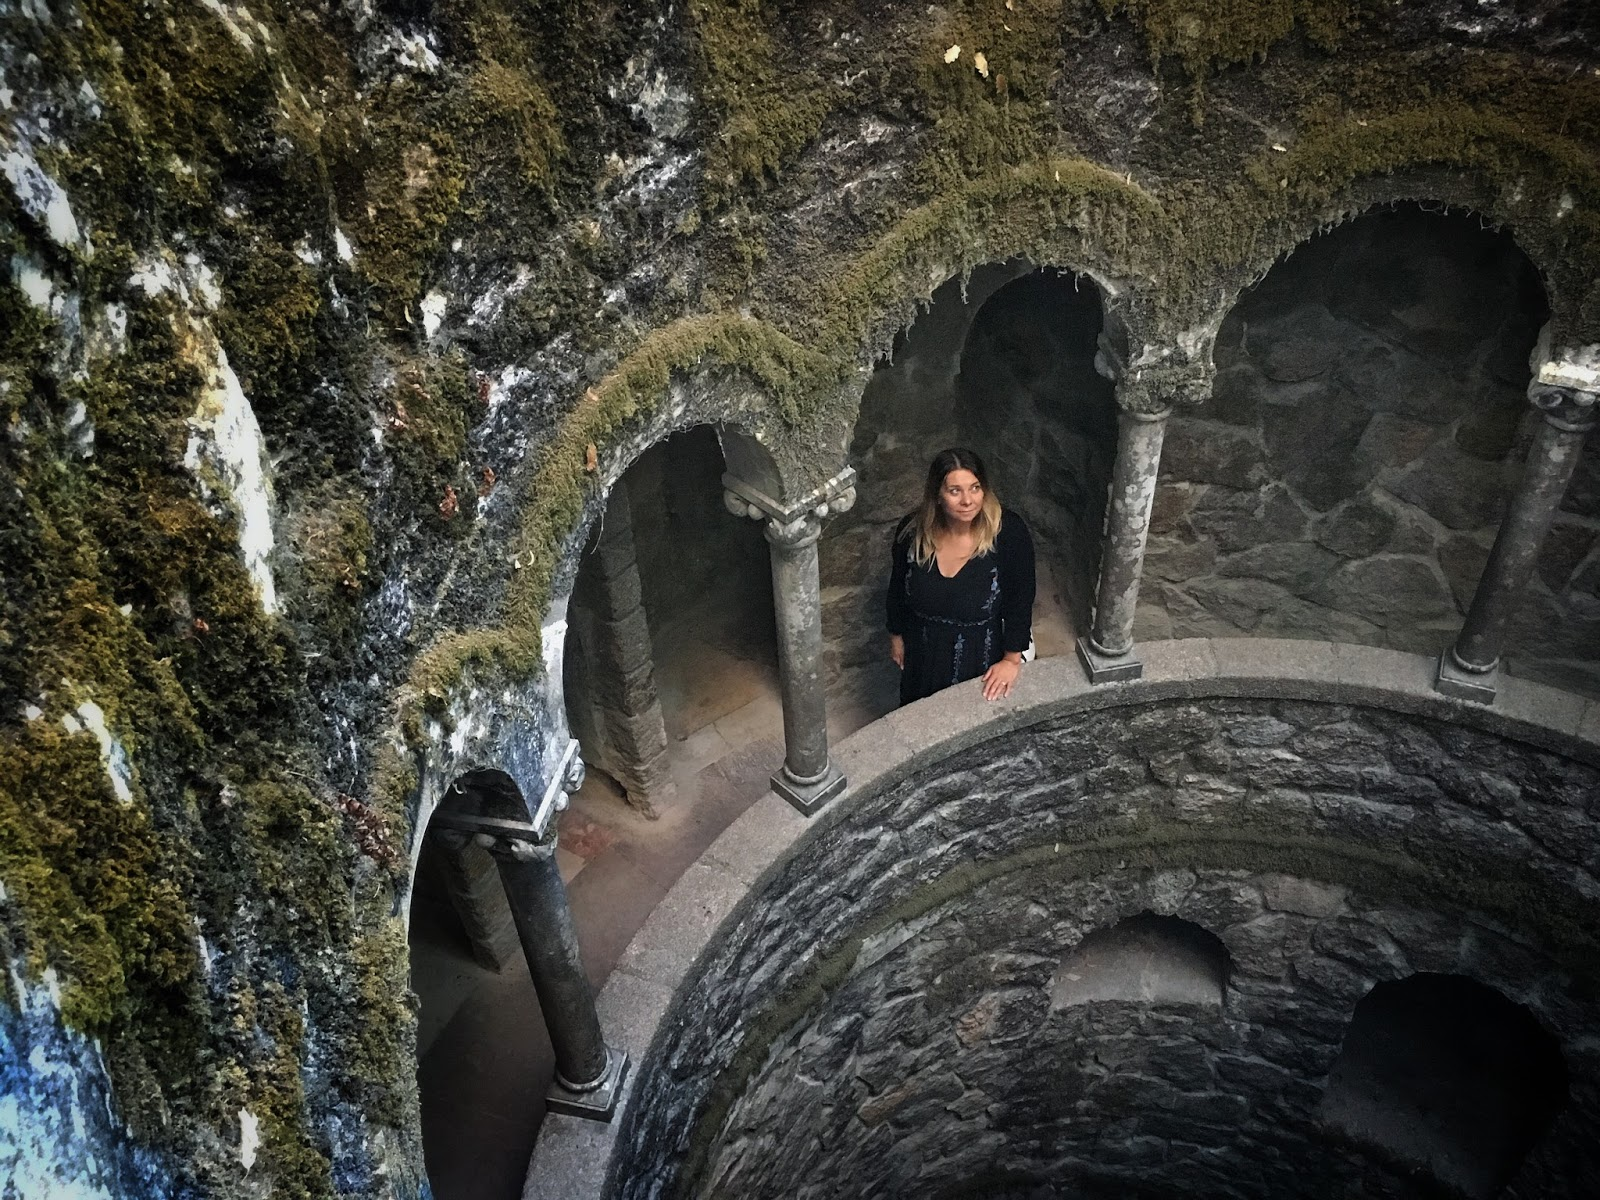 Quinta de Regaleira has such mystique